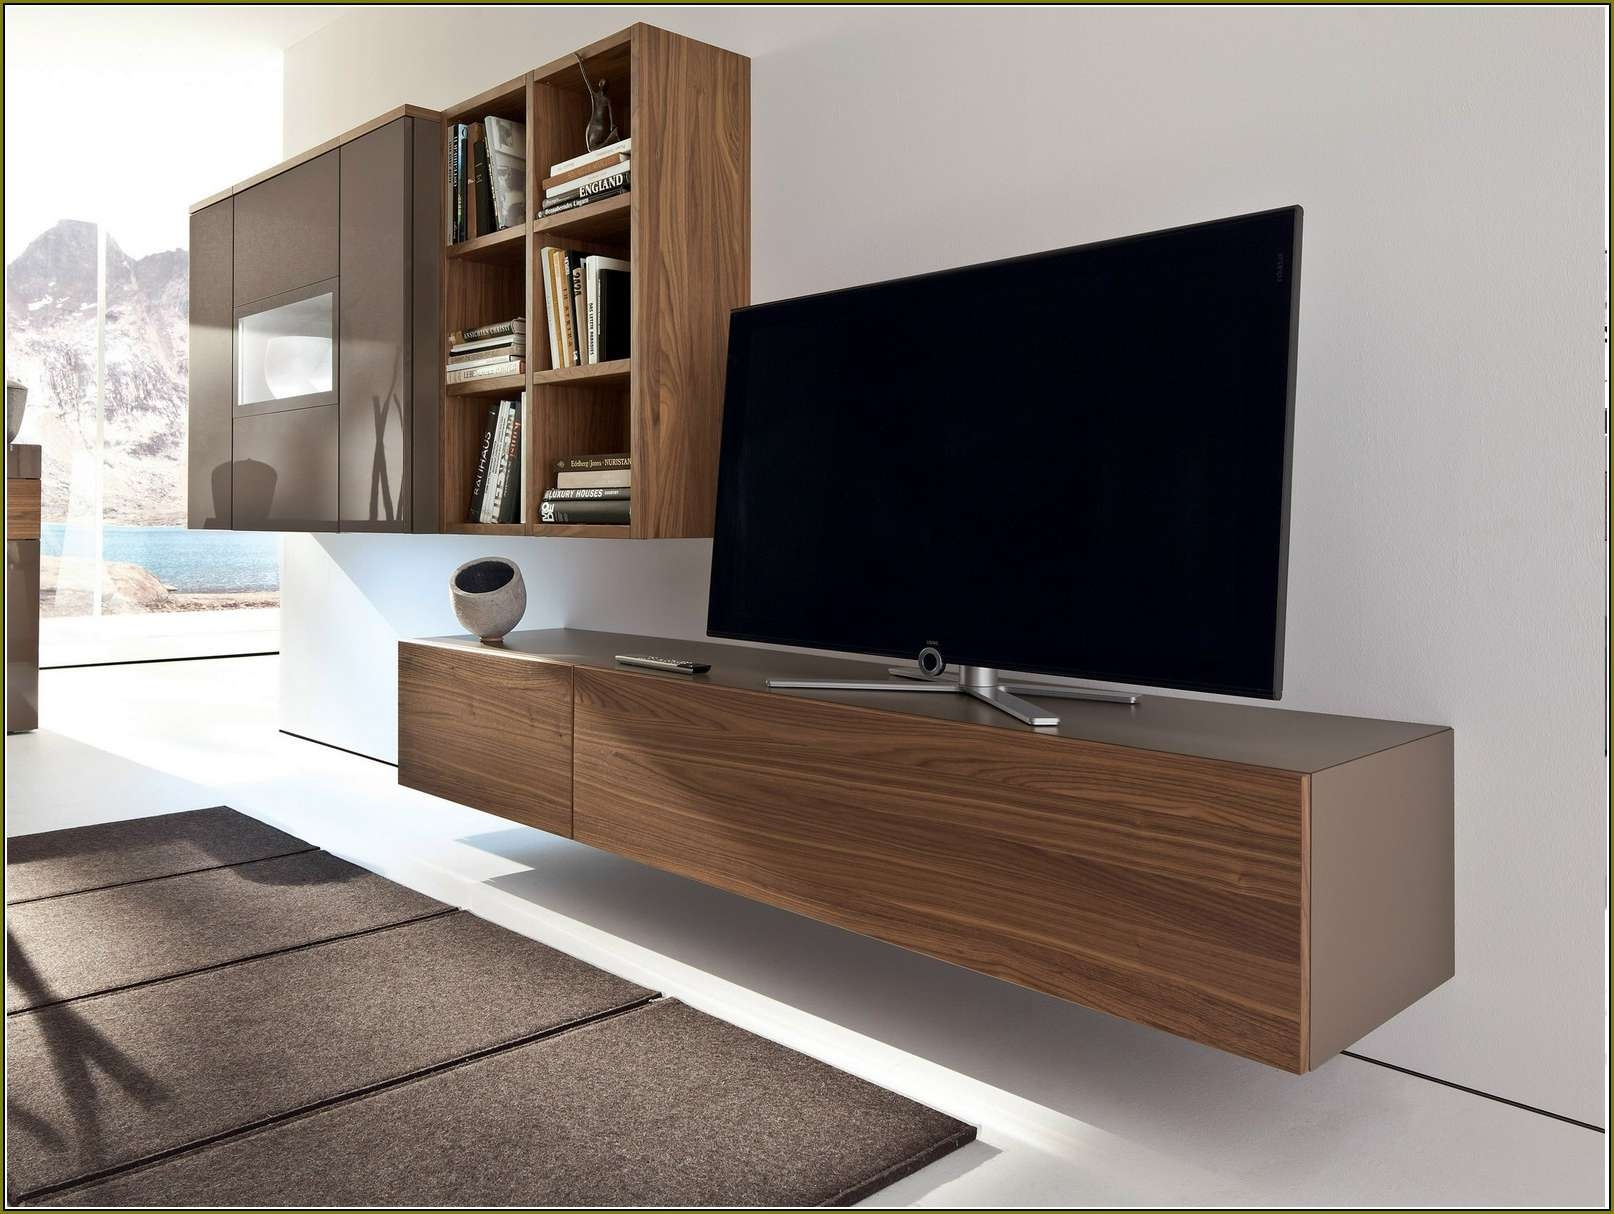 Indian Rosewood Wall Mounted Tv Cabinet With Sliding Door Panel For Wall Mounted Tv Cabinets With Sliding Doors (View 4 of 20)